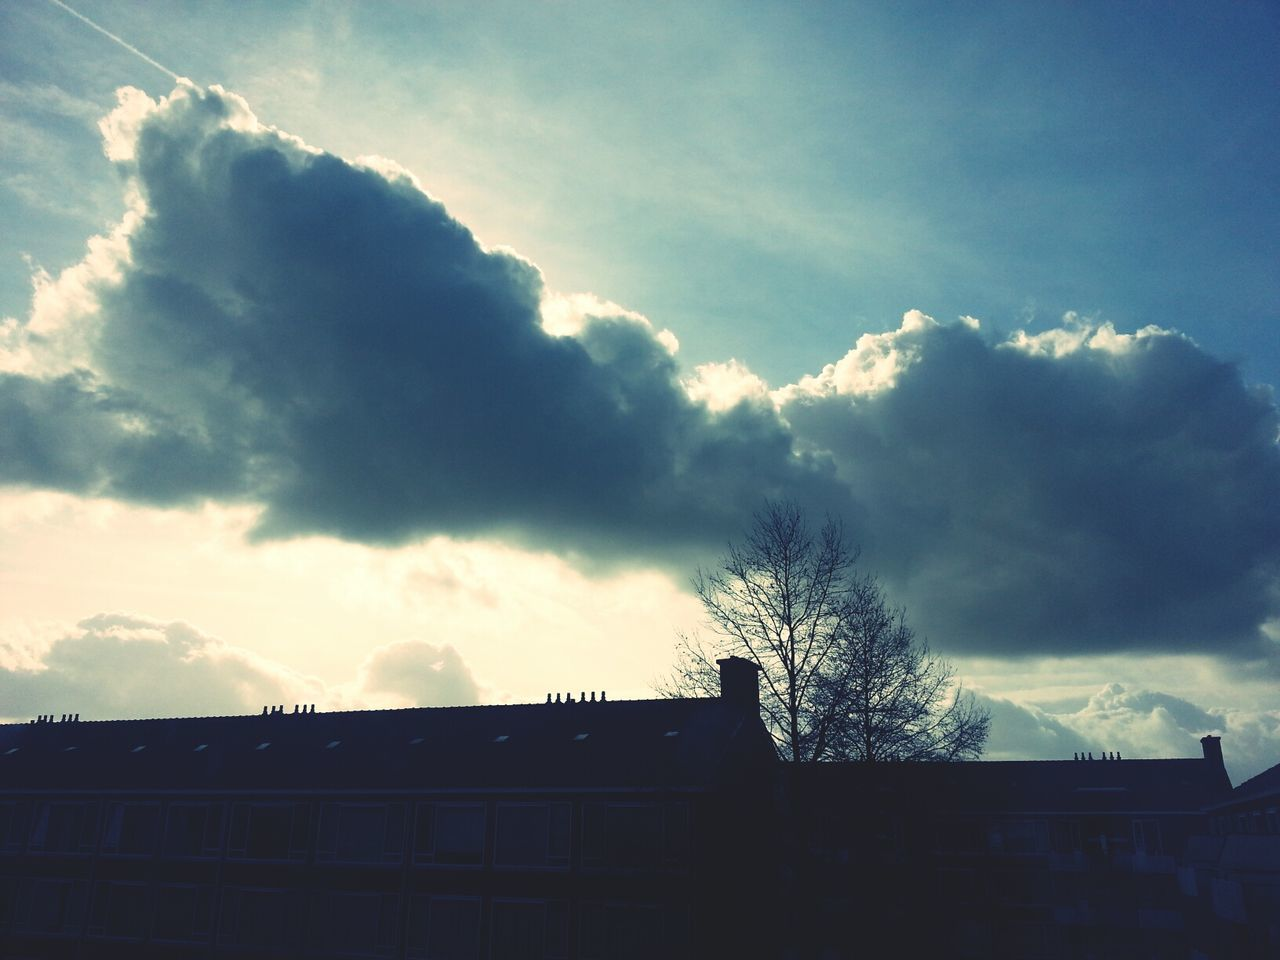 sky, cloud - sky, low angle view, built structure, architecture, outdoors, day, building exterior, silhouette, no people, nature, beauty in nature, tree